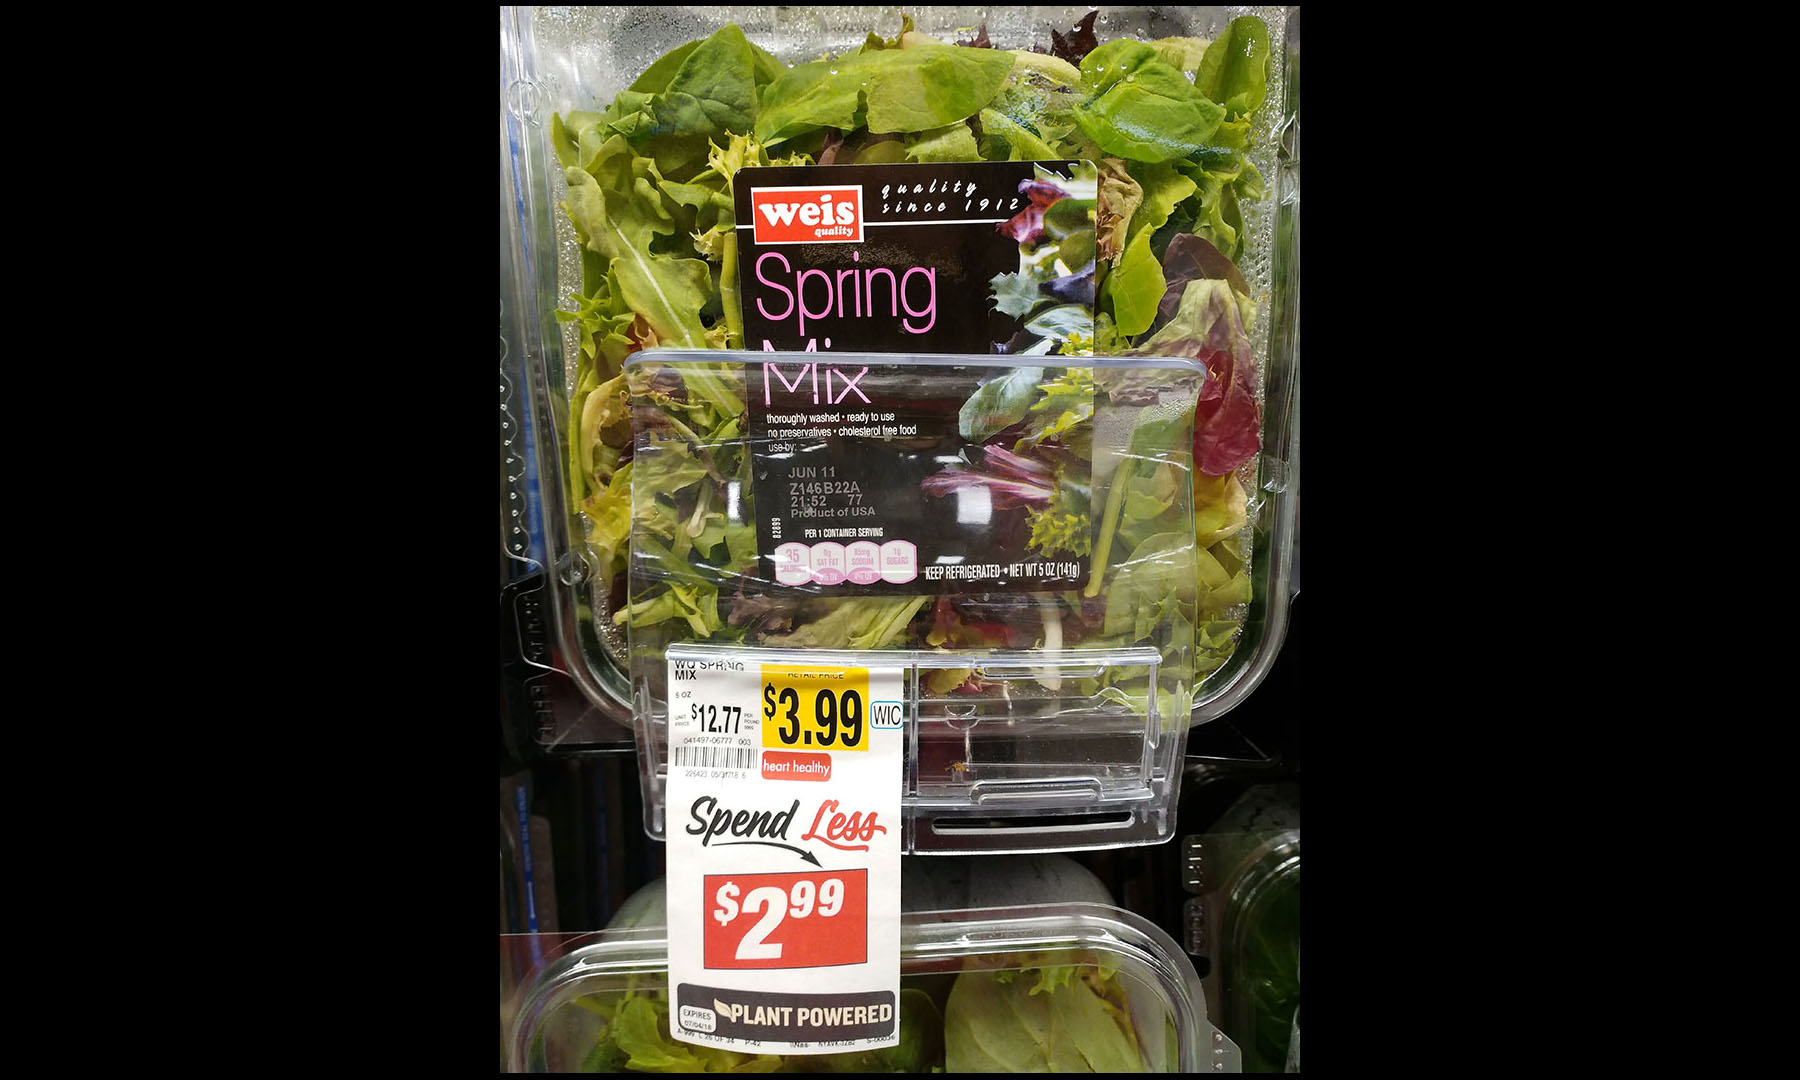 Plant Powered Weis Markets